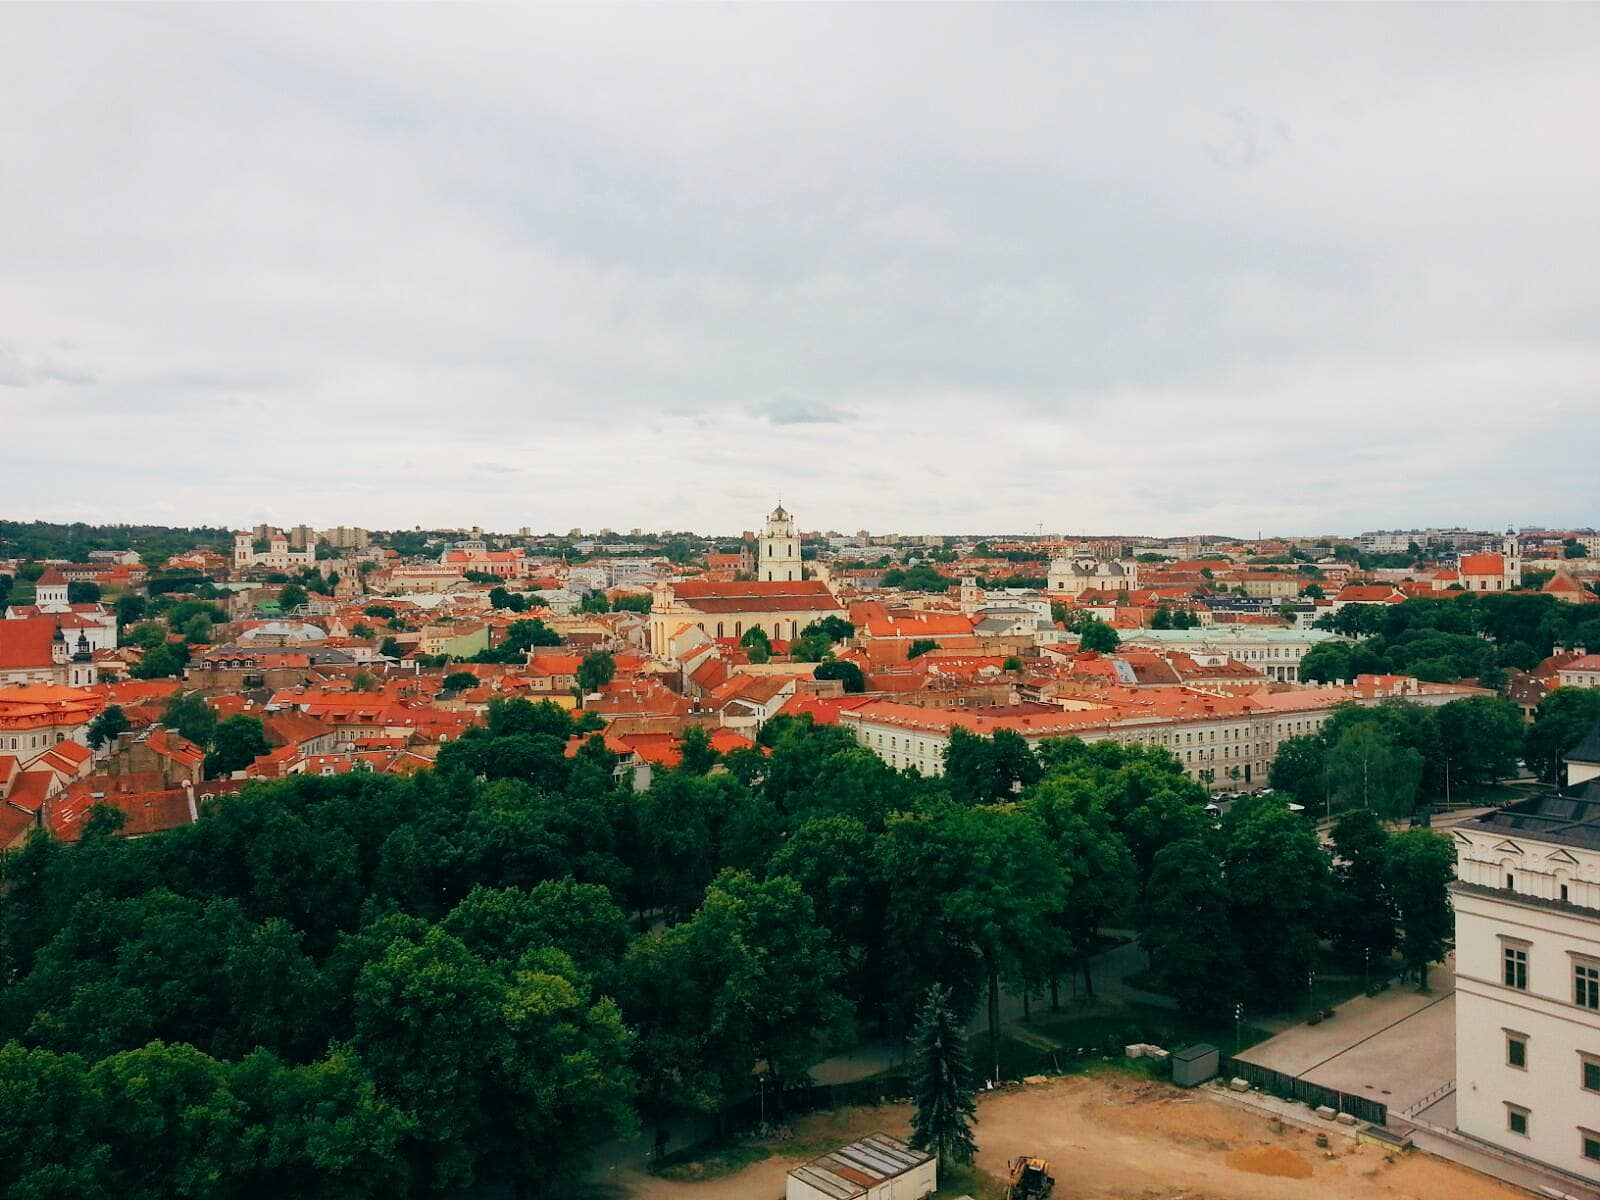 Vilnius, Lithuania was my first stop for this trip.